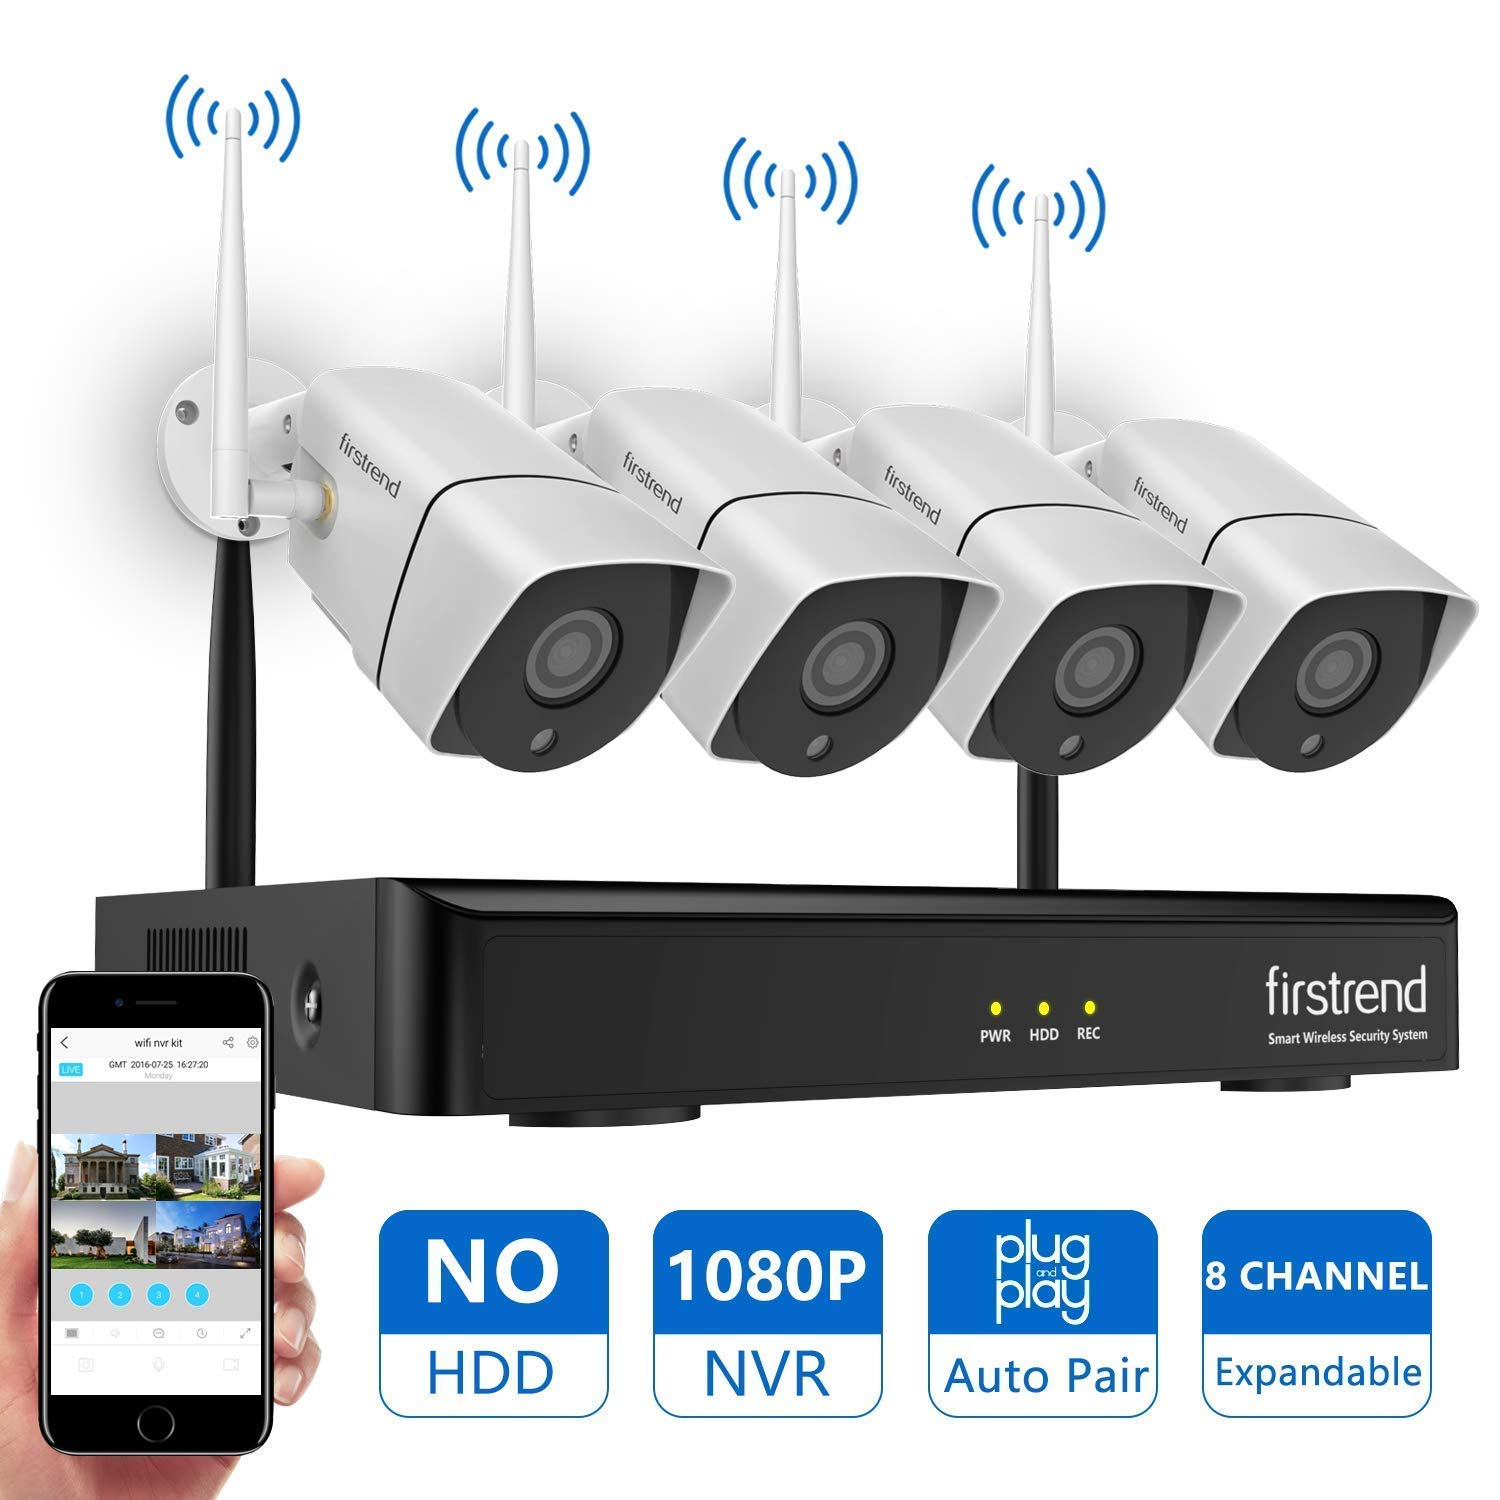 [Newest] Wireless Security Camera System, Firstrend 8CH 1080P Wireless NVR System with 4pcs 1.3MP IP Security Camera with 65ft Night Vision and Easy Remote View,P2P CCTV Camera System(No Hard Drive) by firstrend